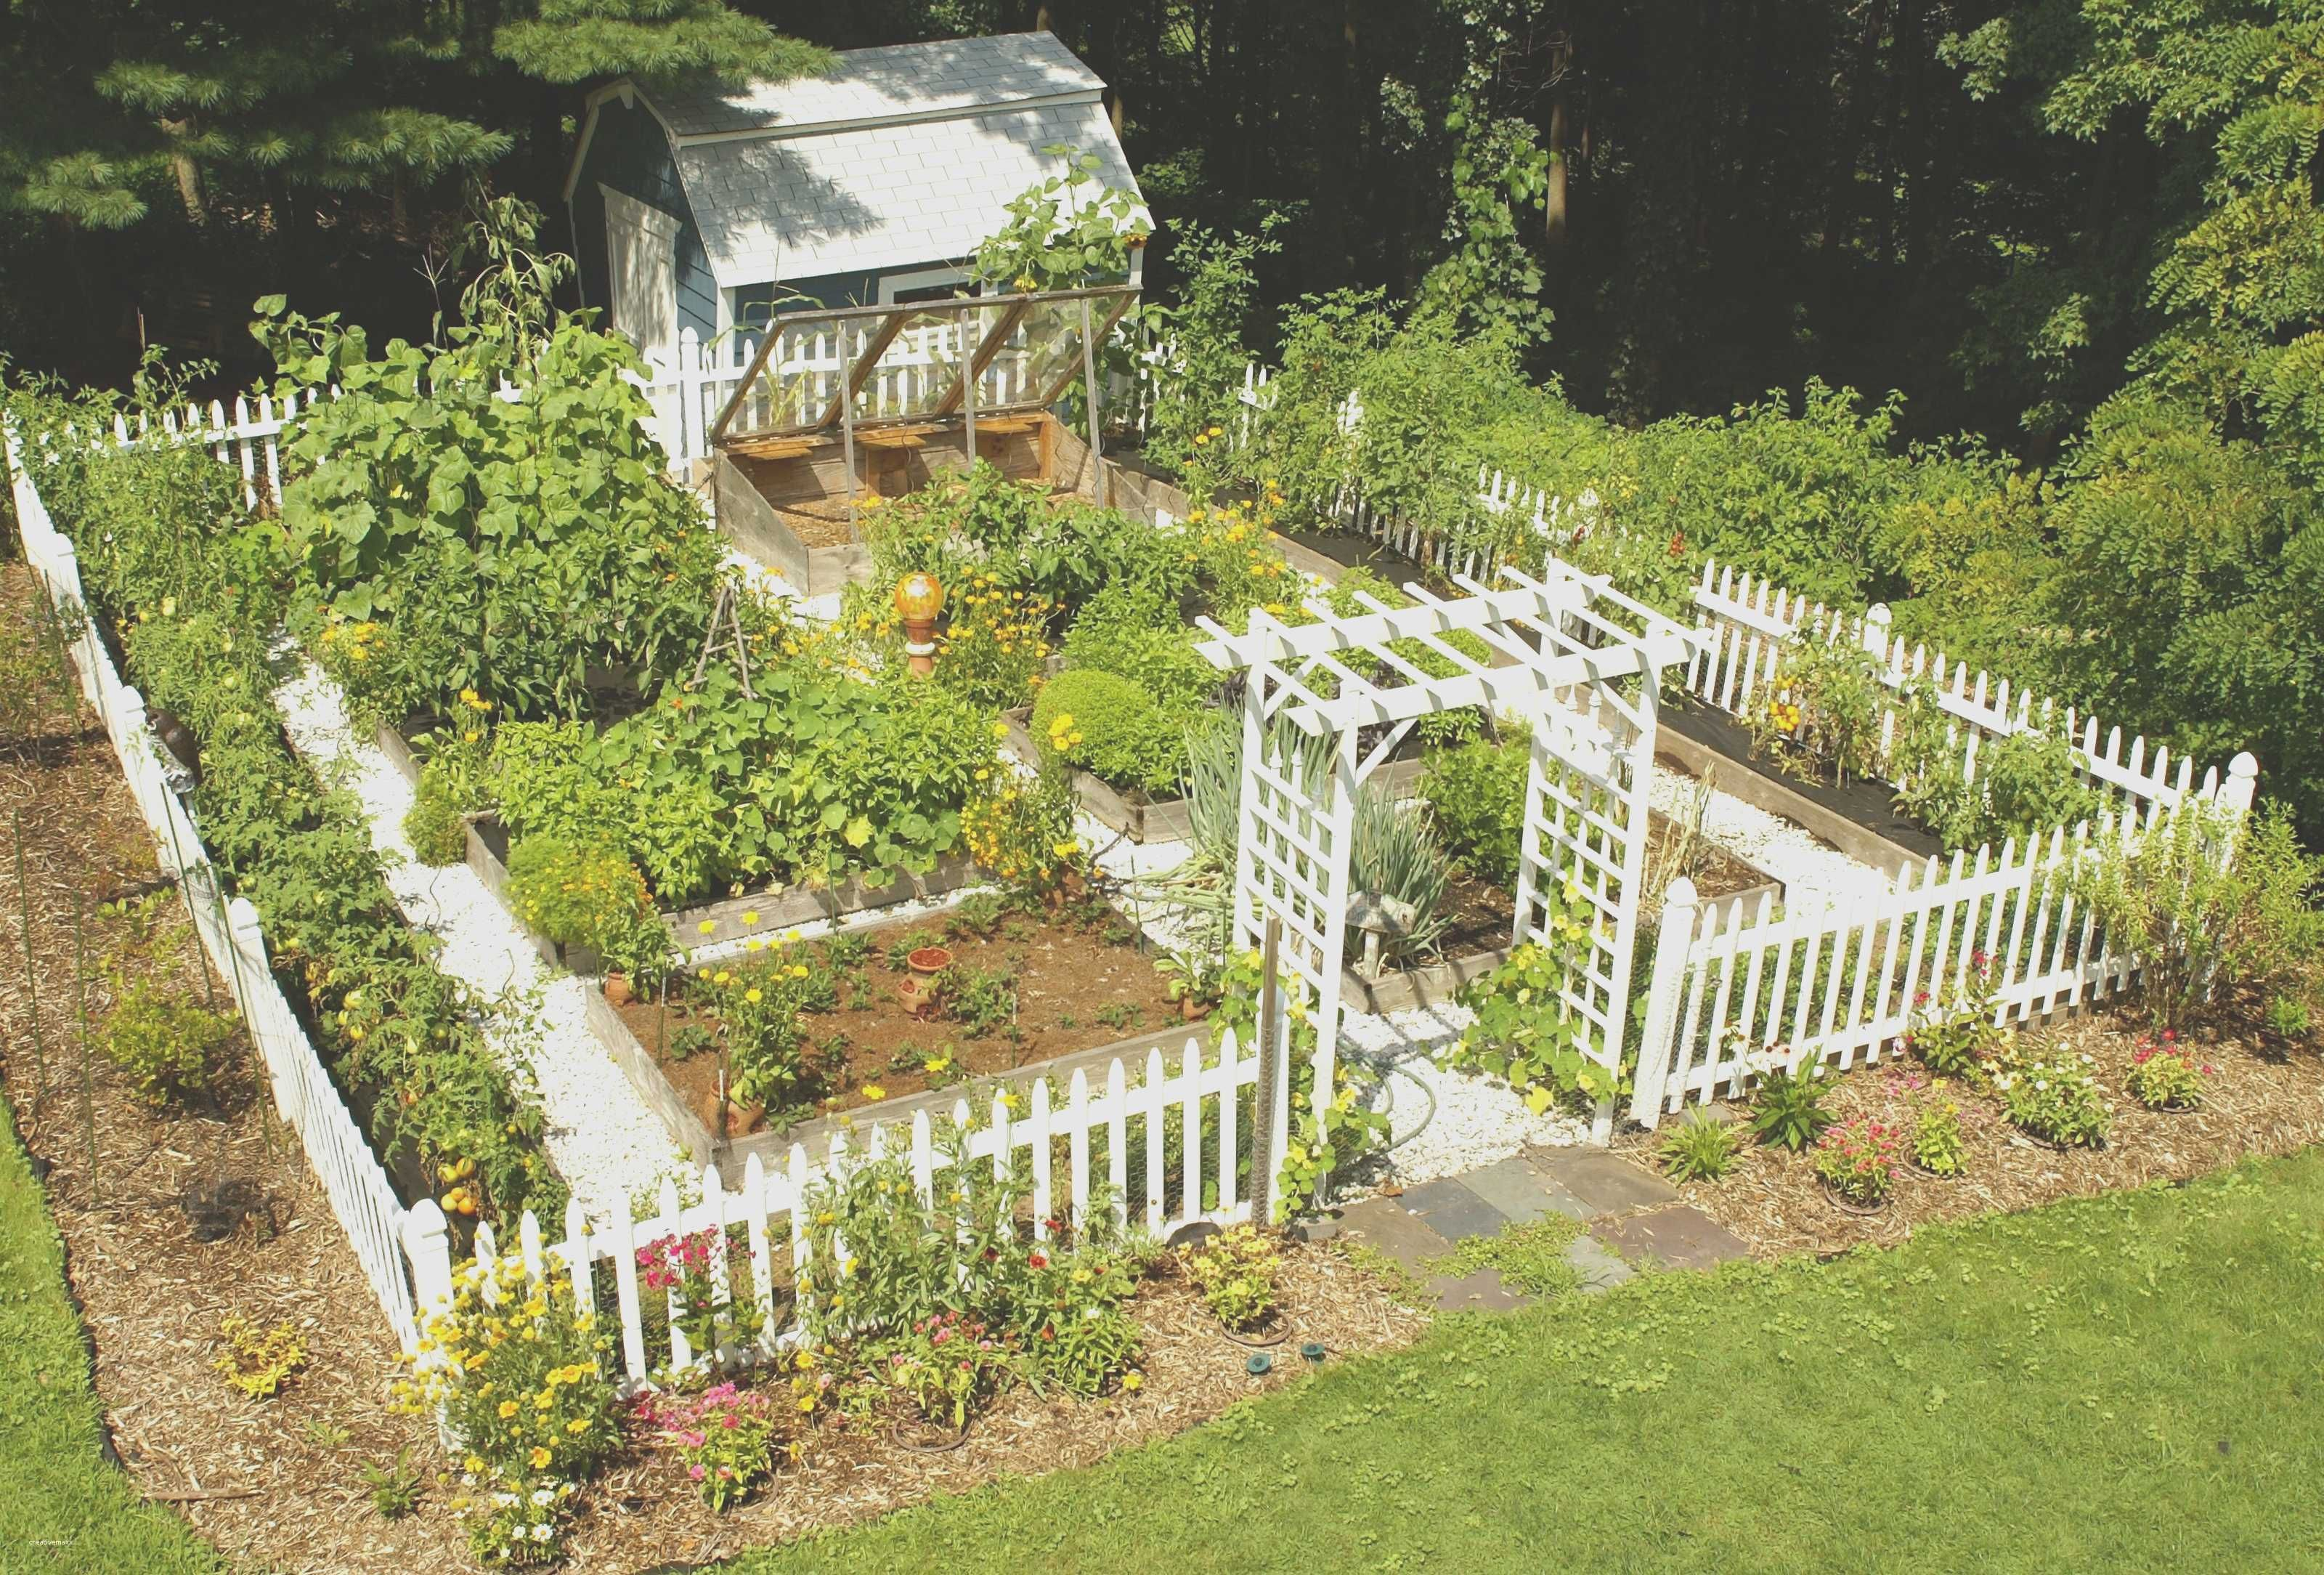 Vegetable Garden Ideas For Small Spaces New Vegetable Garden Ideas For Small Spaces Patio Idea Home Vegetable Garden Design Vege Garden Design Garden Layout